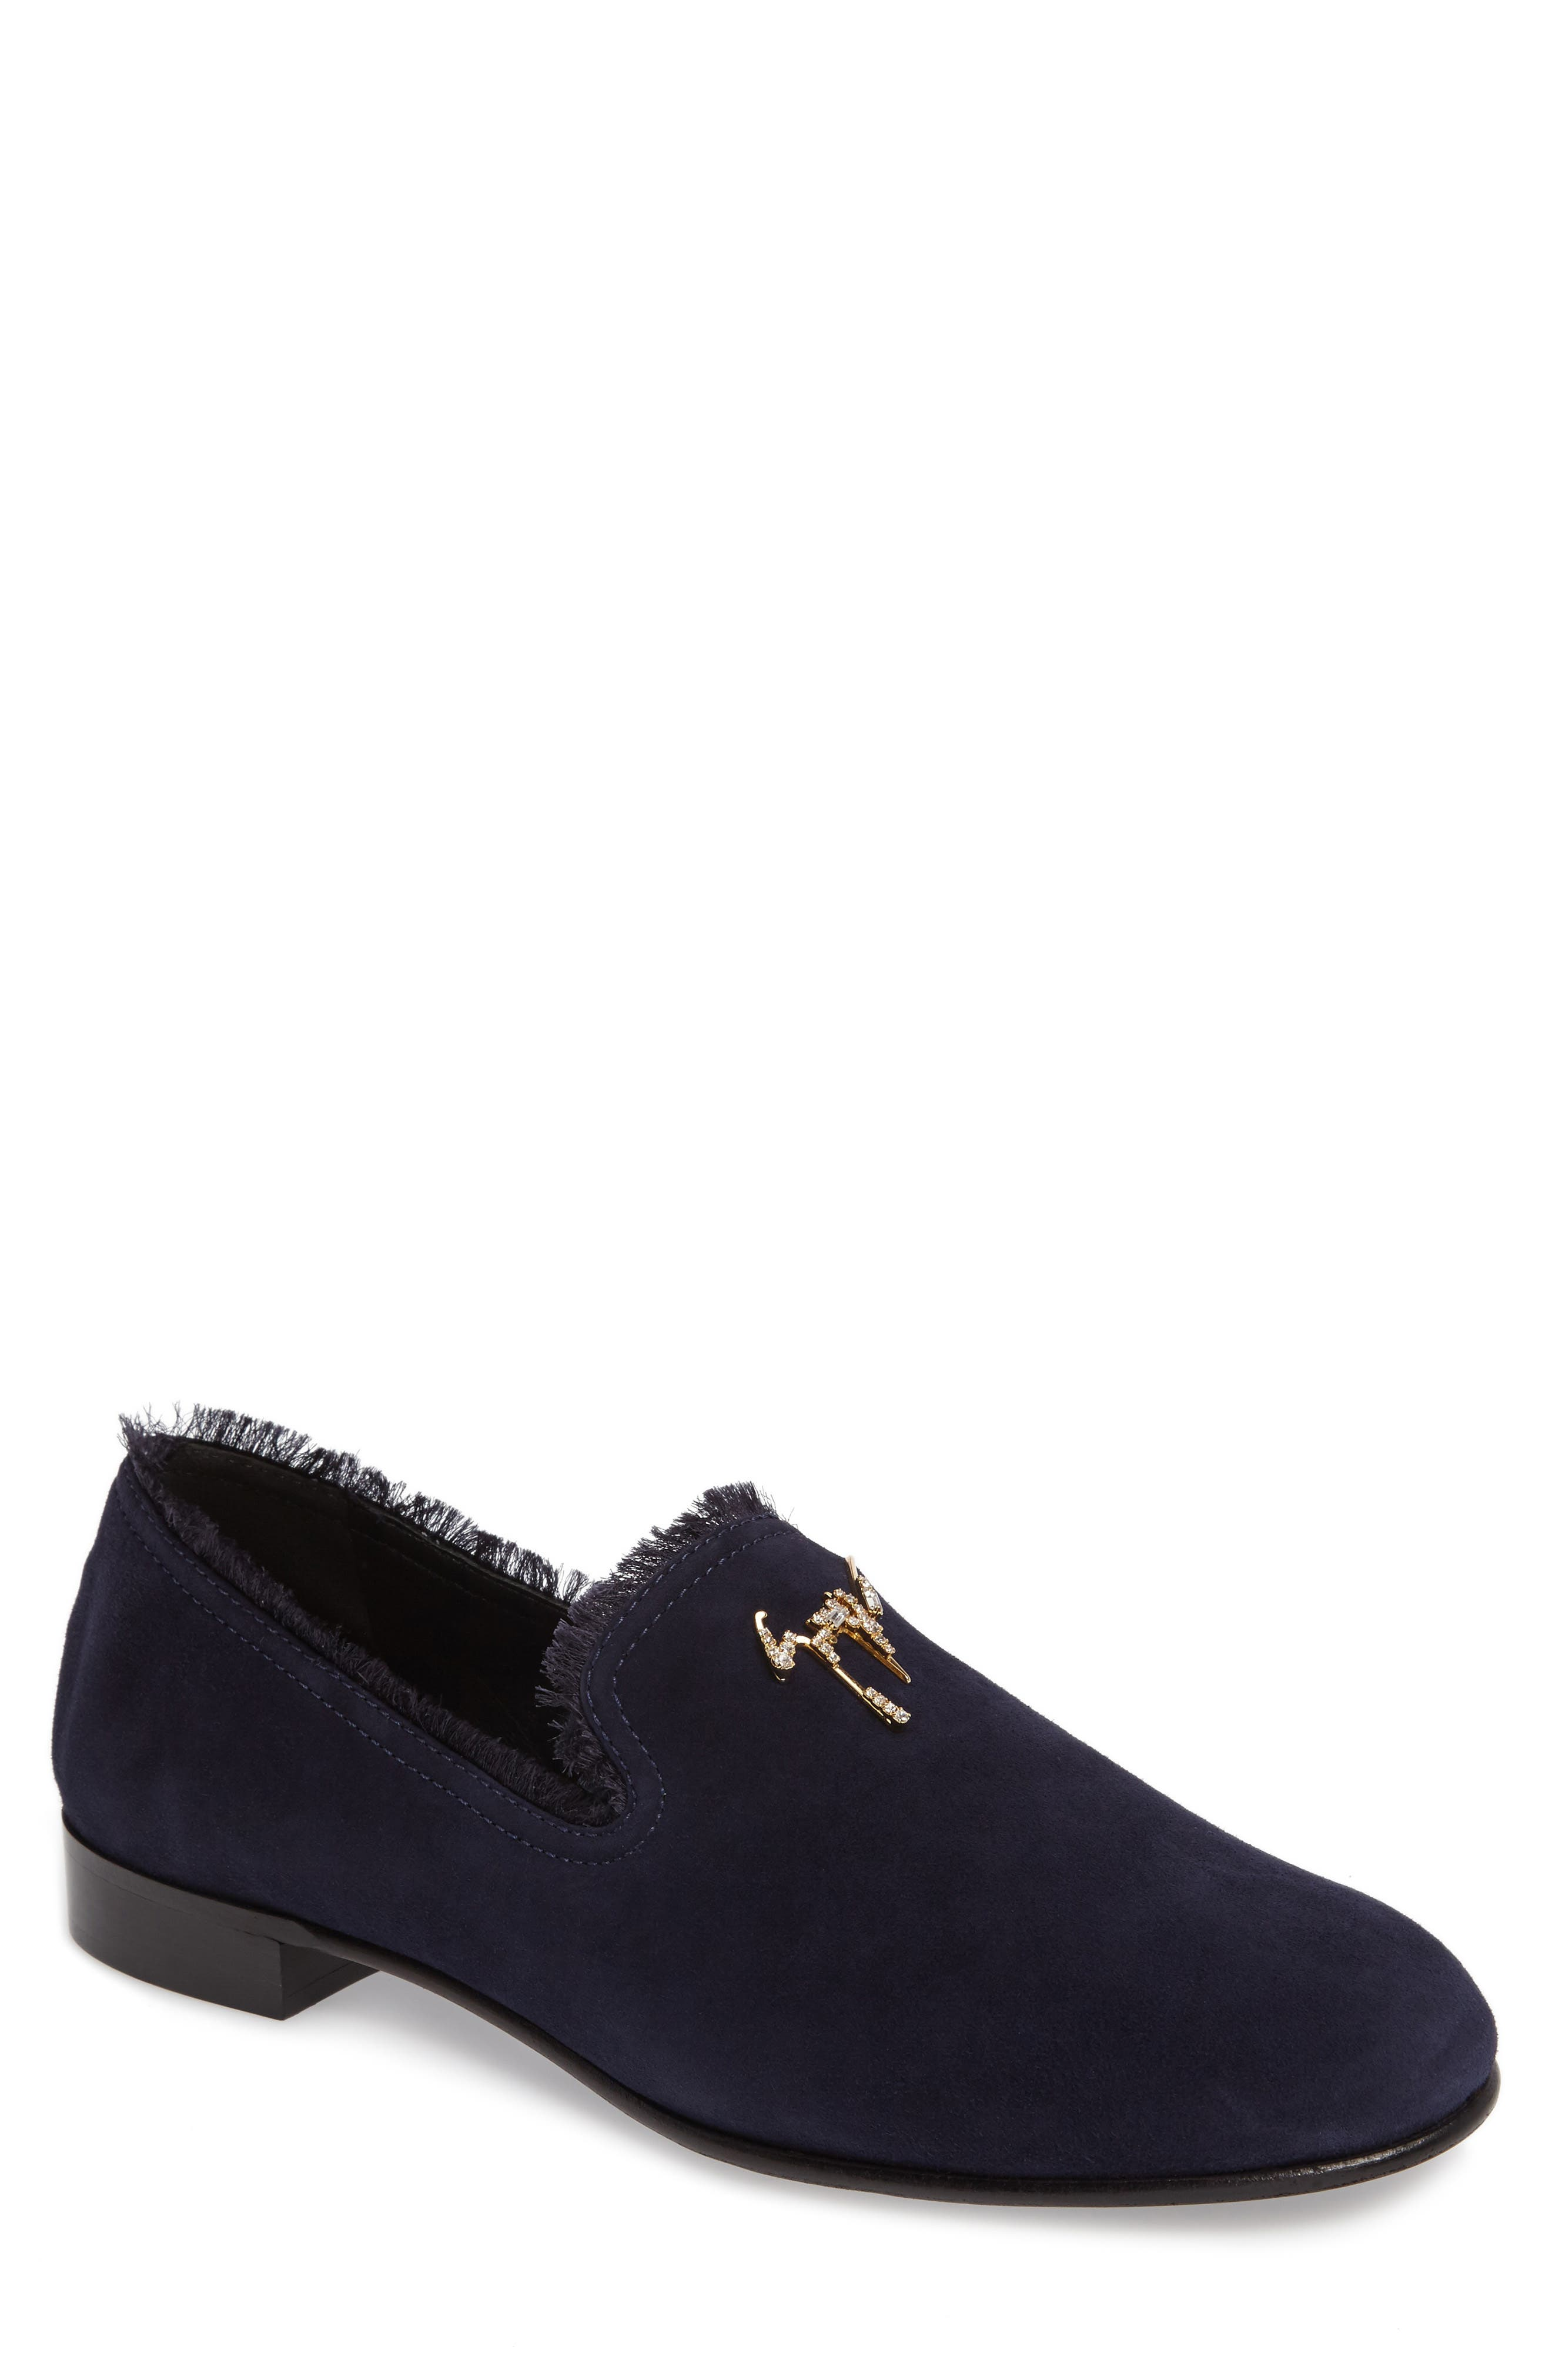 Smoking Slipper,                         Main,                         color, Can Nuit Blue